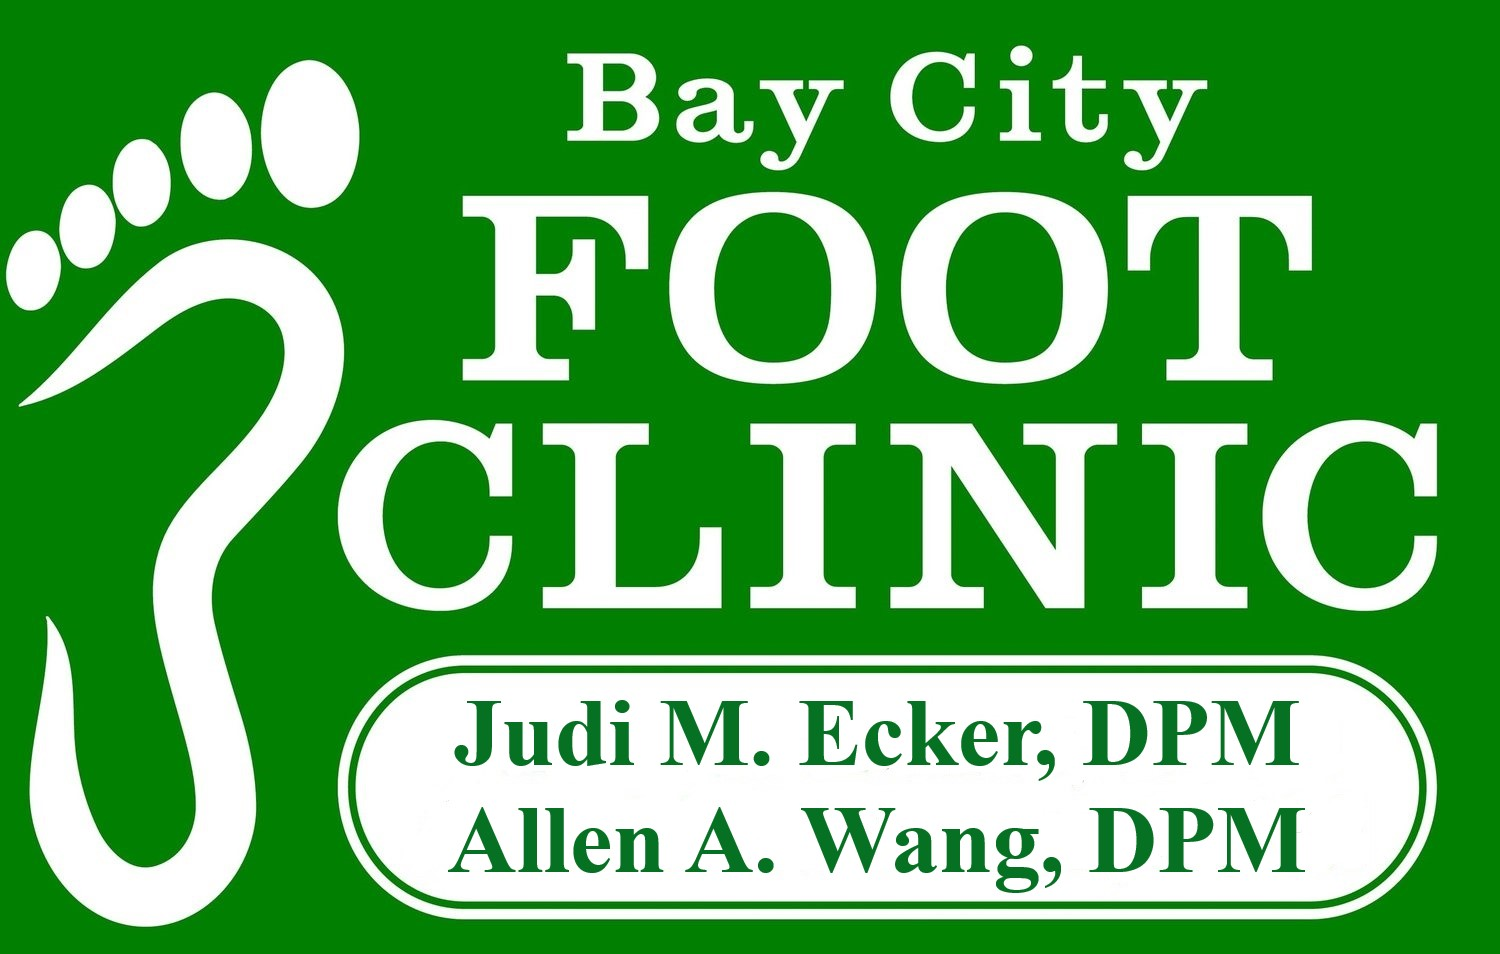 Bay City Foot Clinic